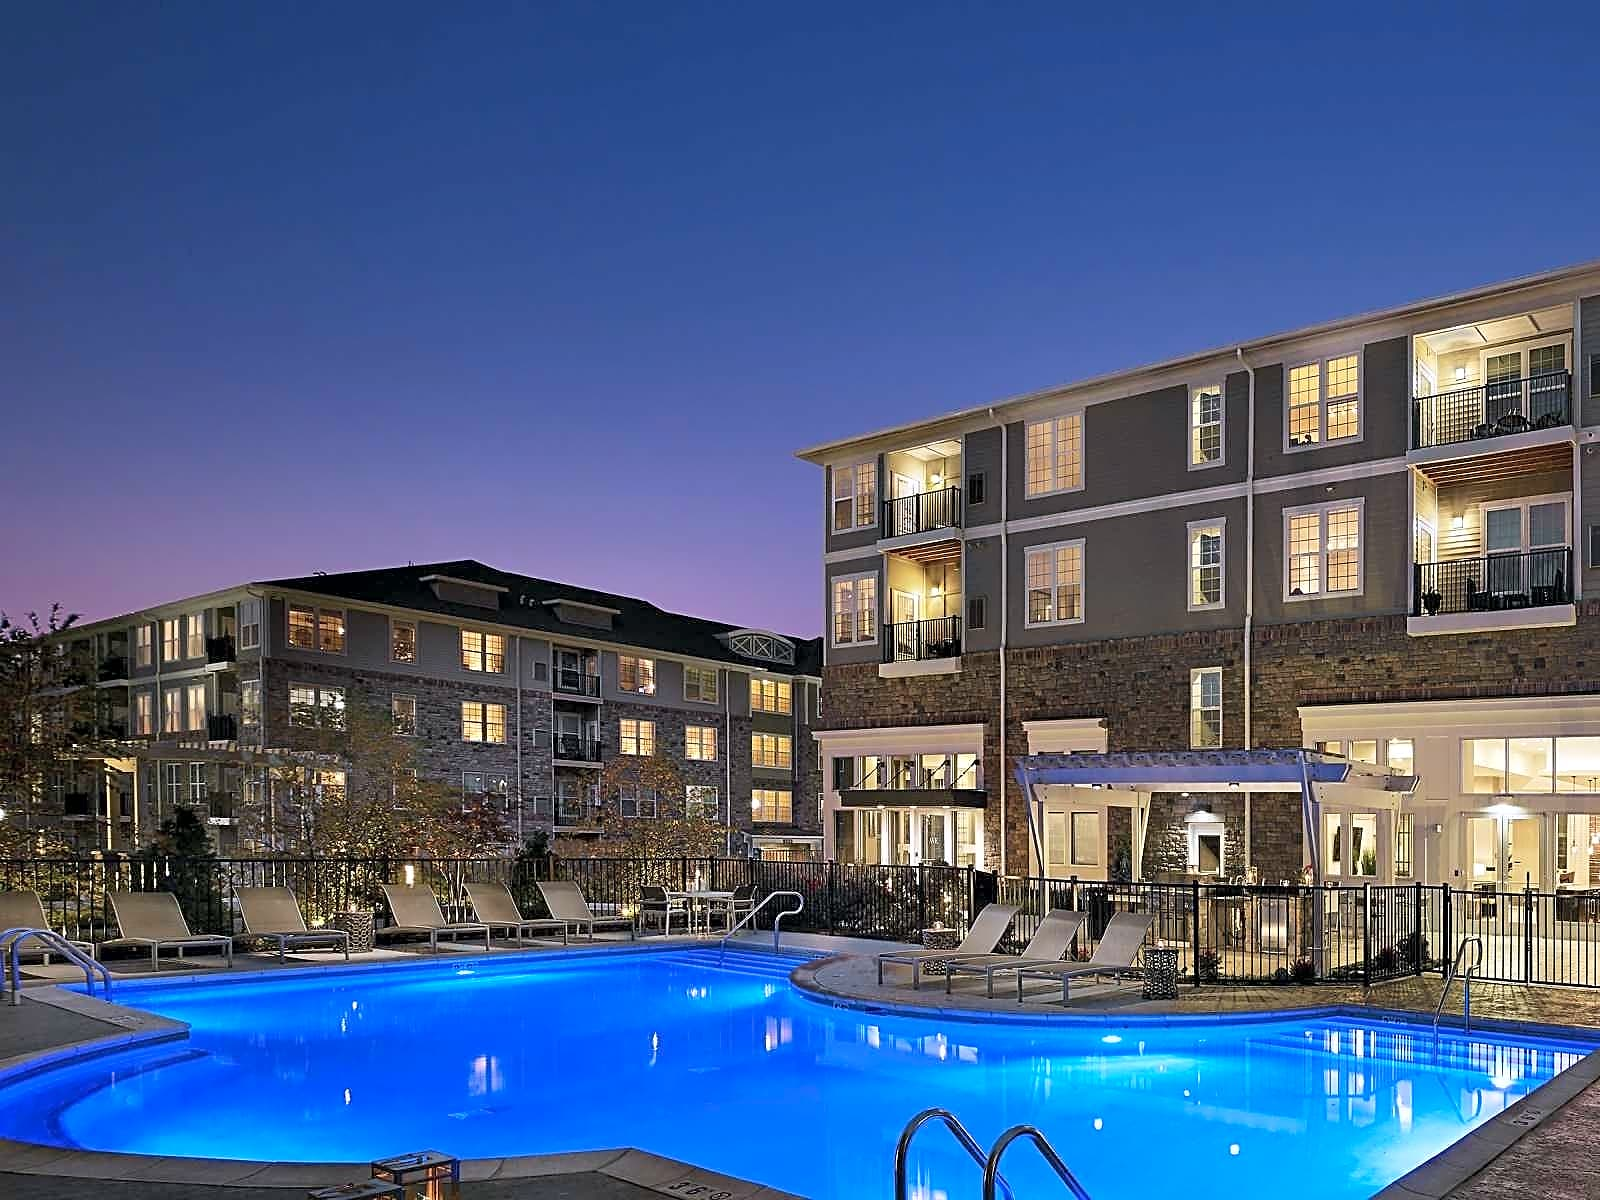 Apartments Near Penn St Brandywine AVE Newtown Square for Pennsylvania State University Brandywine Students in Media, PA